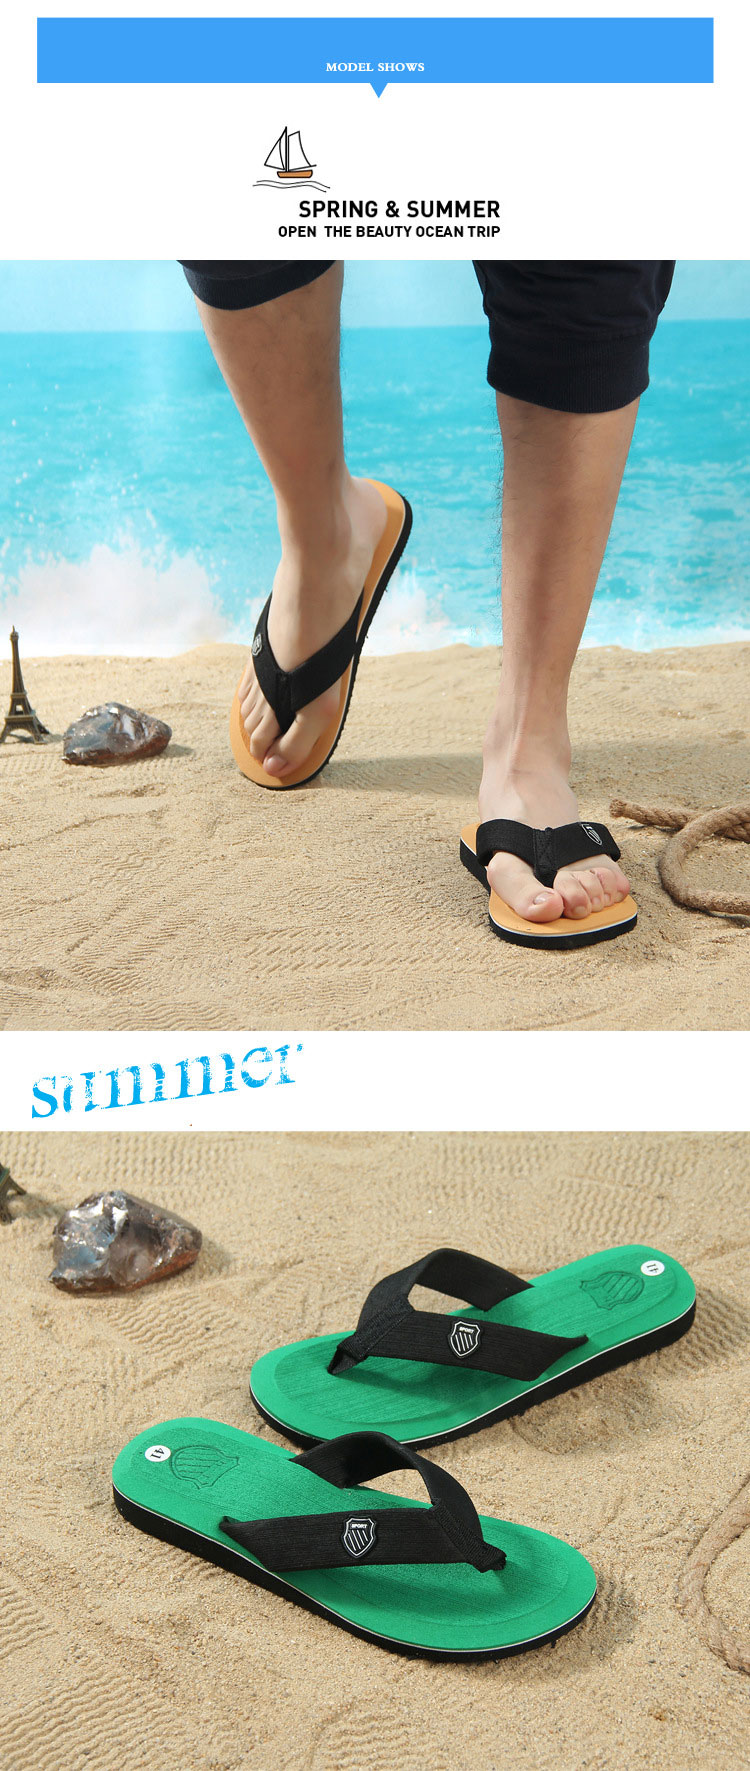 New Arrival Shoe Men Summer MEN'S Slippers Sandals Open Toe Flip-flops Slippers Slides Men Flip Flops Non-slip Sole Man Shoes